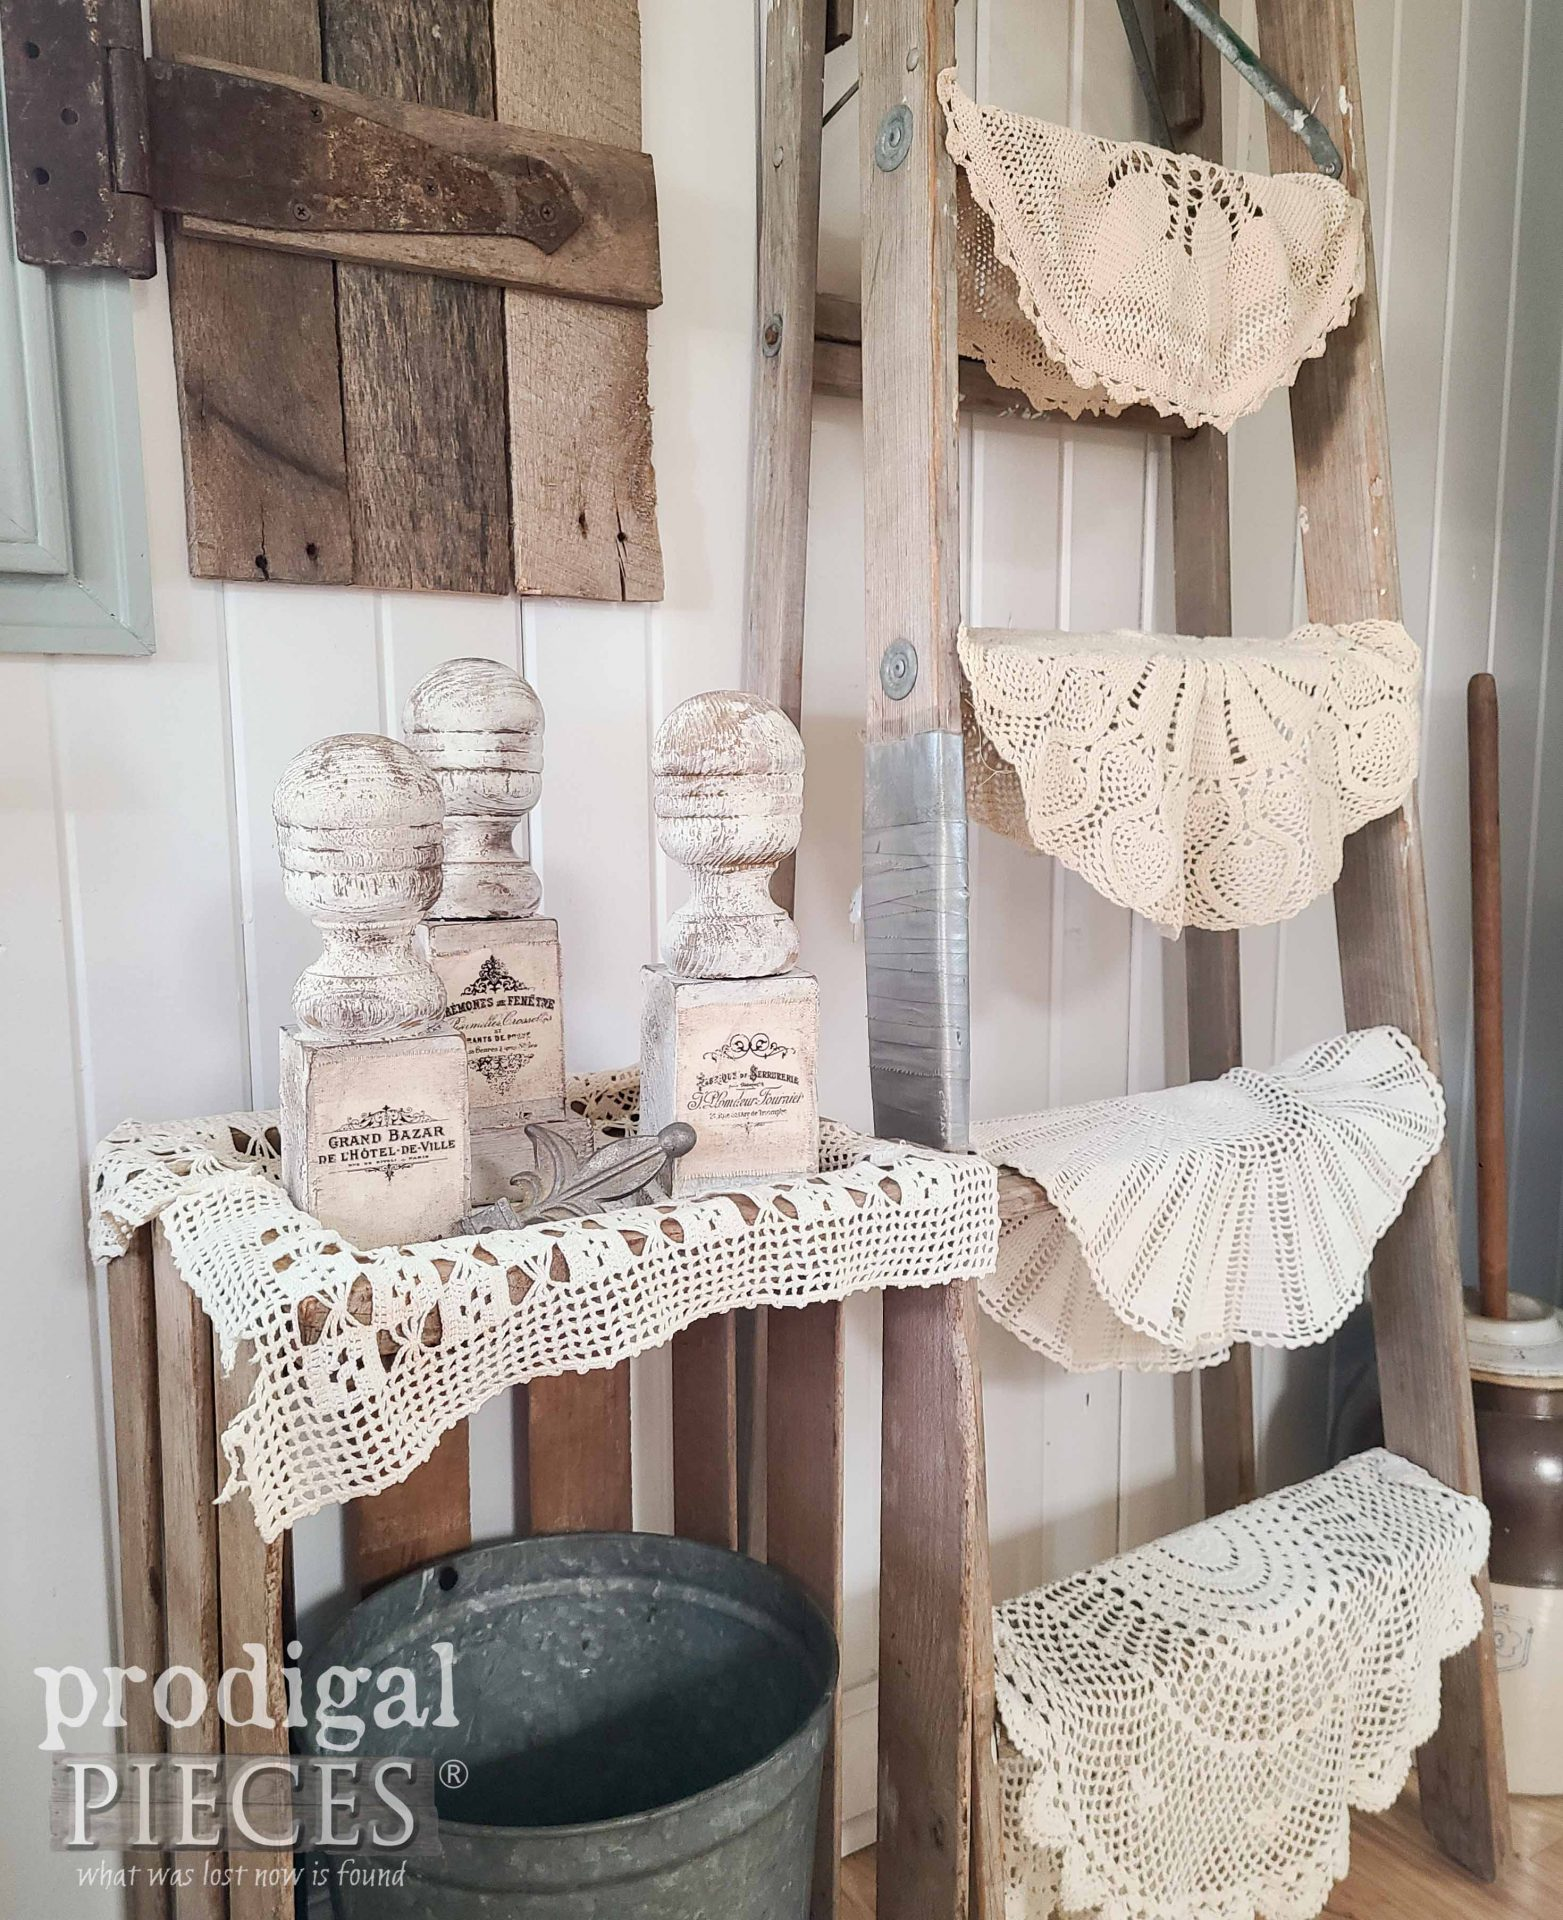 Upcycled French Farmhouse Decor with Upcycled Finials by Larissa of Prodigal Pieces | prodigalpieces.com #prodigalpieces #farmhouse #home #homedecor #diy